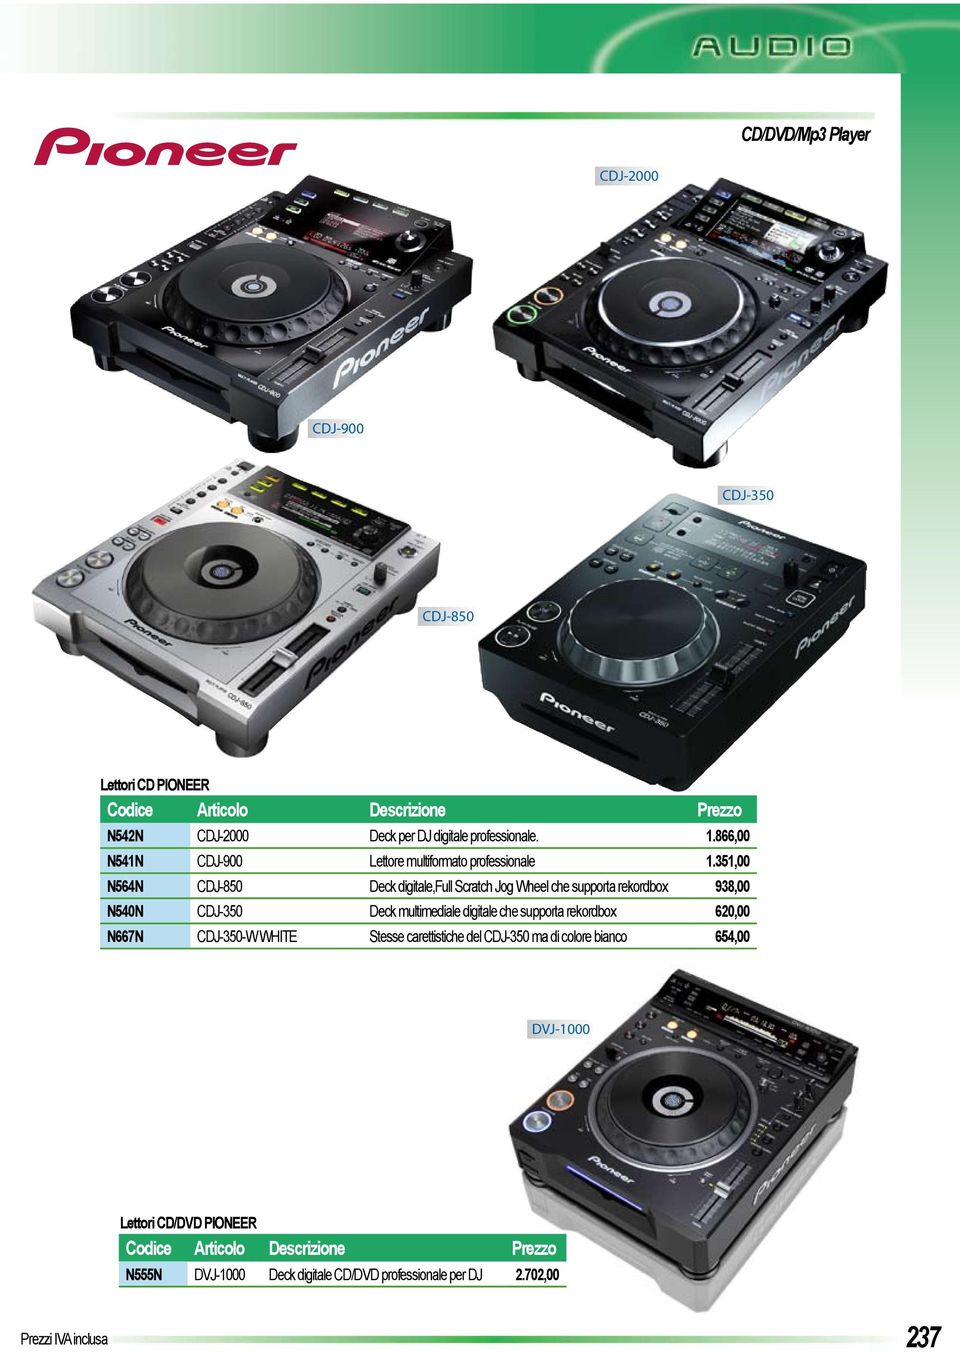 351,00 N564N CDJ-850 Deck digitale,full Scratch Jog Wheel che supporta rekordbox 938,00 N540N CDJ-350 Deck multimediale digitale